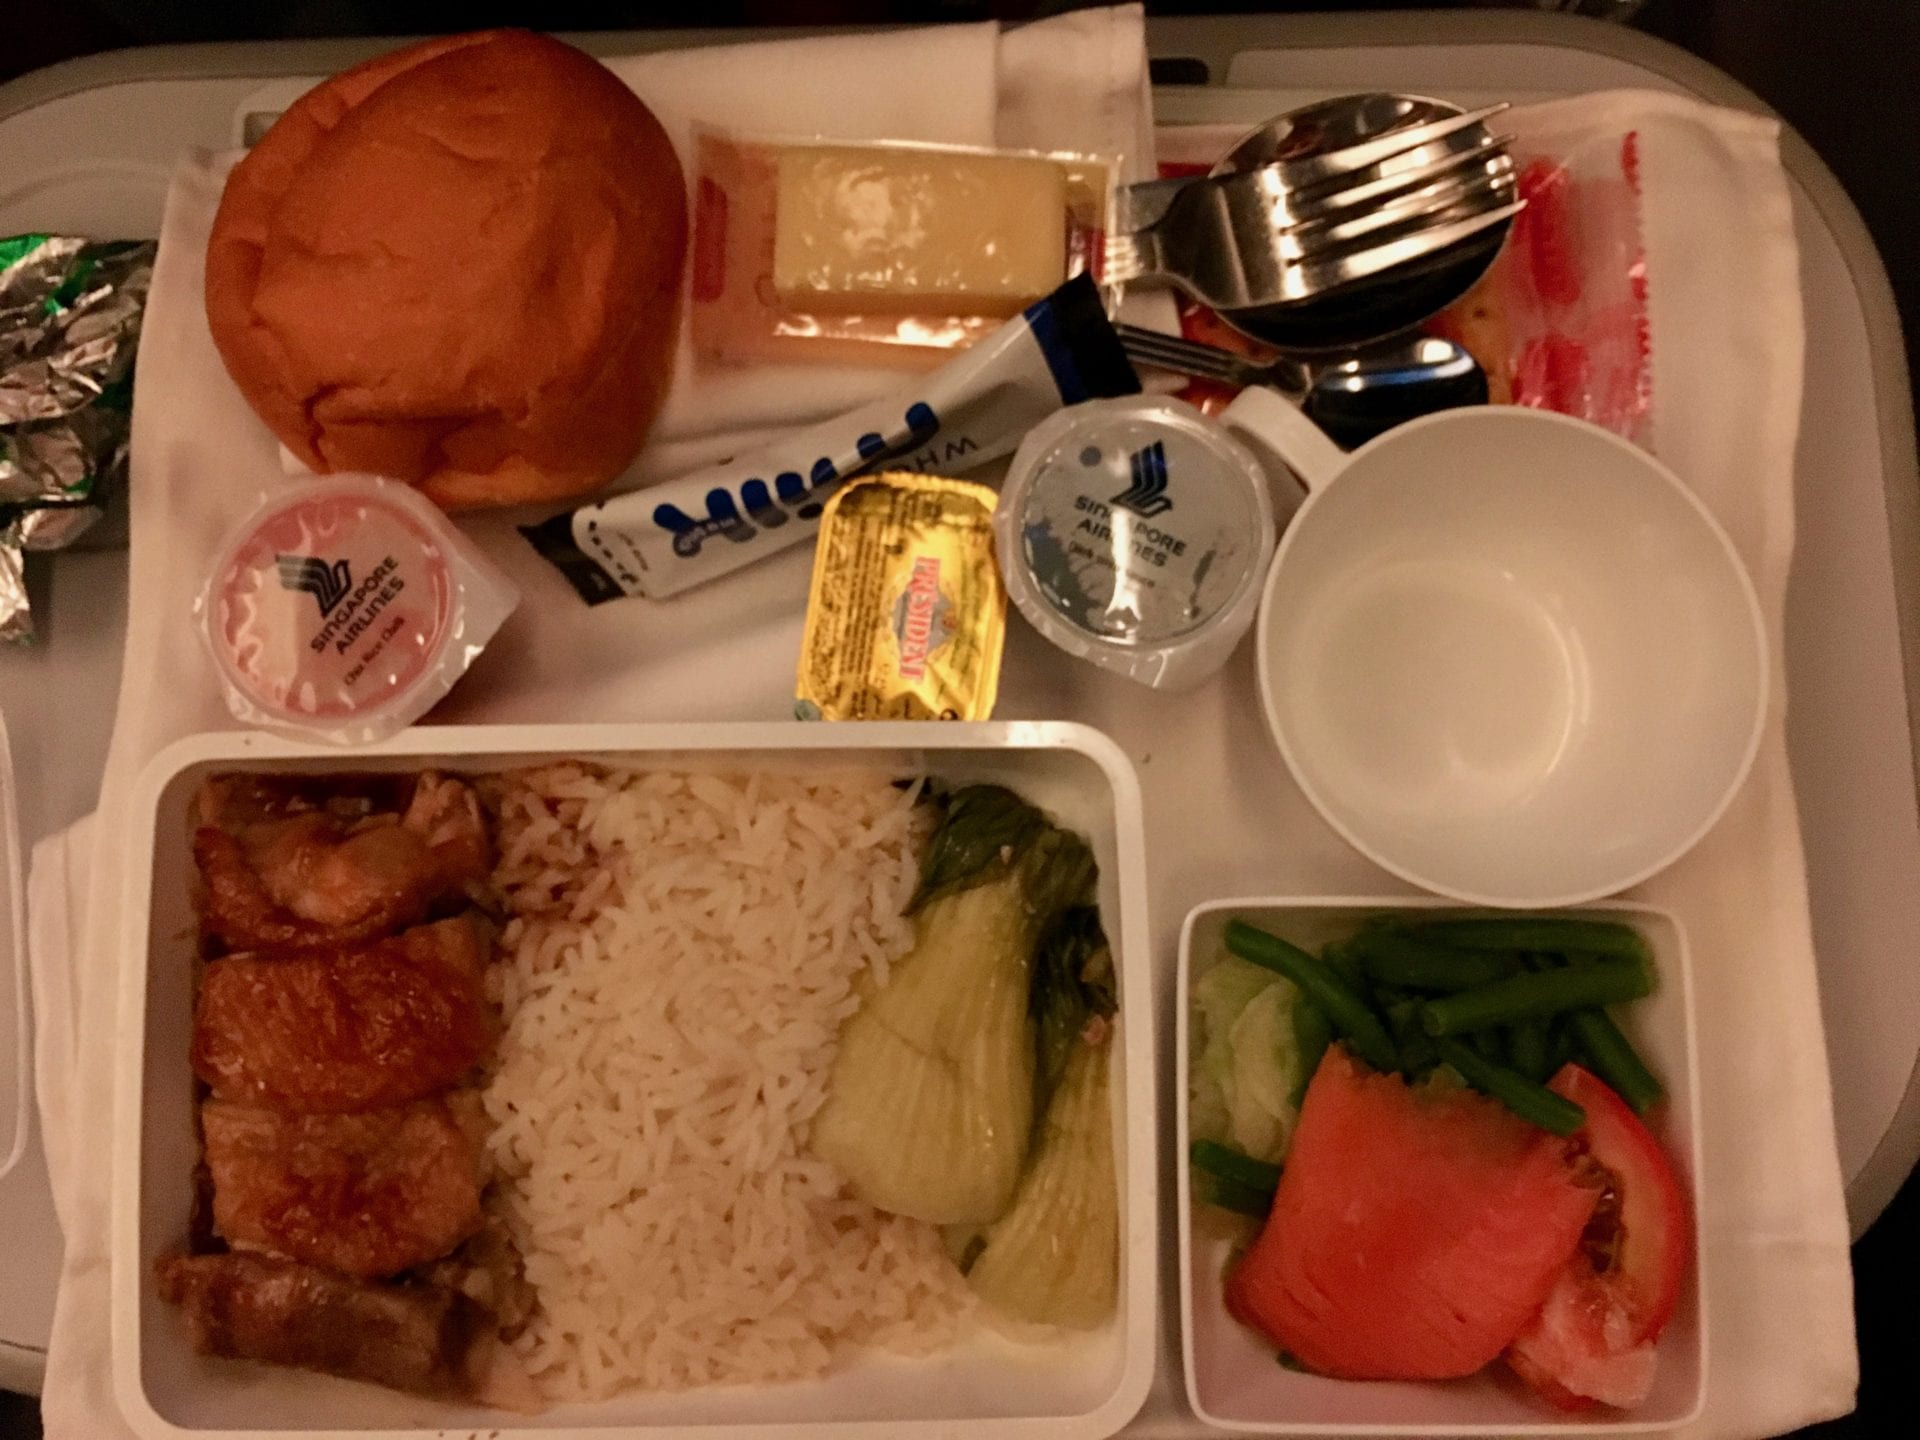 Singapore Airlines Premium Economy Class Ultralangstrecke Steckdosen Mealservice 2